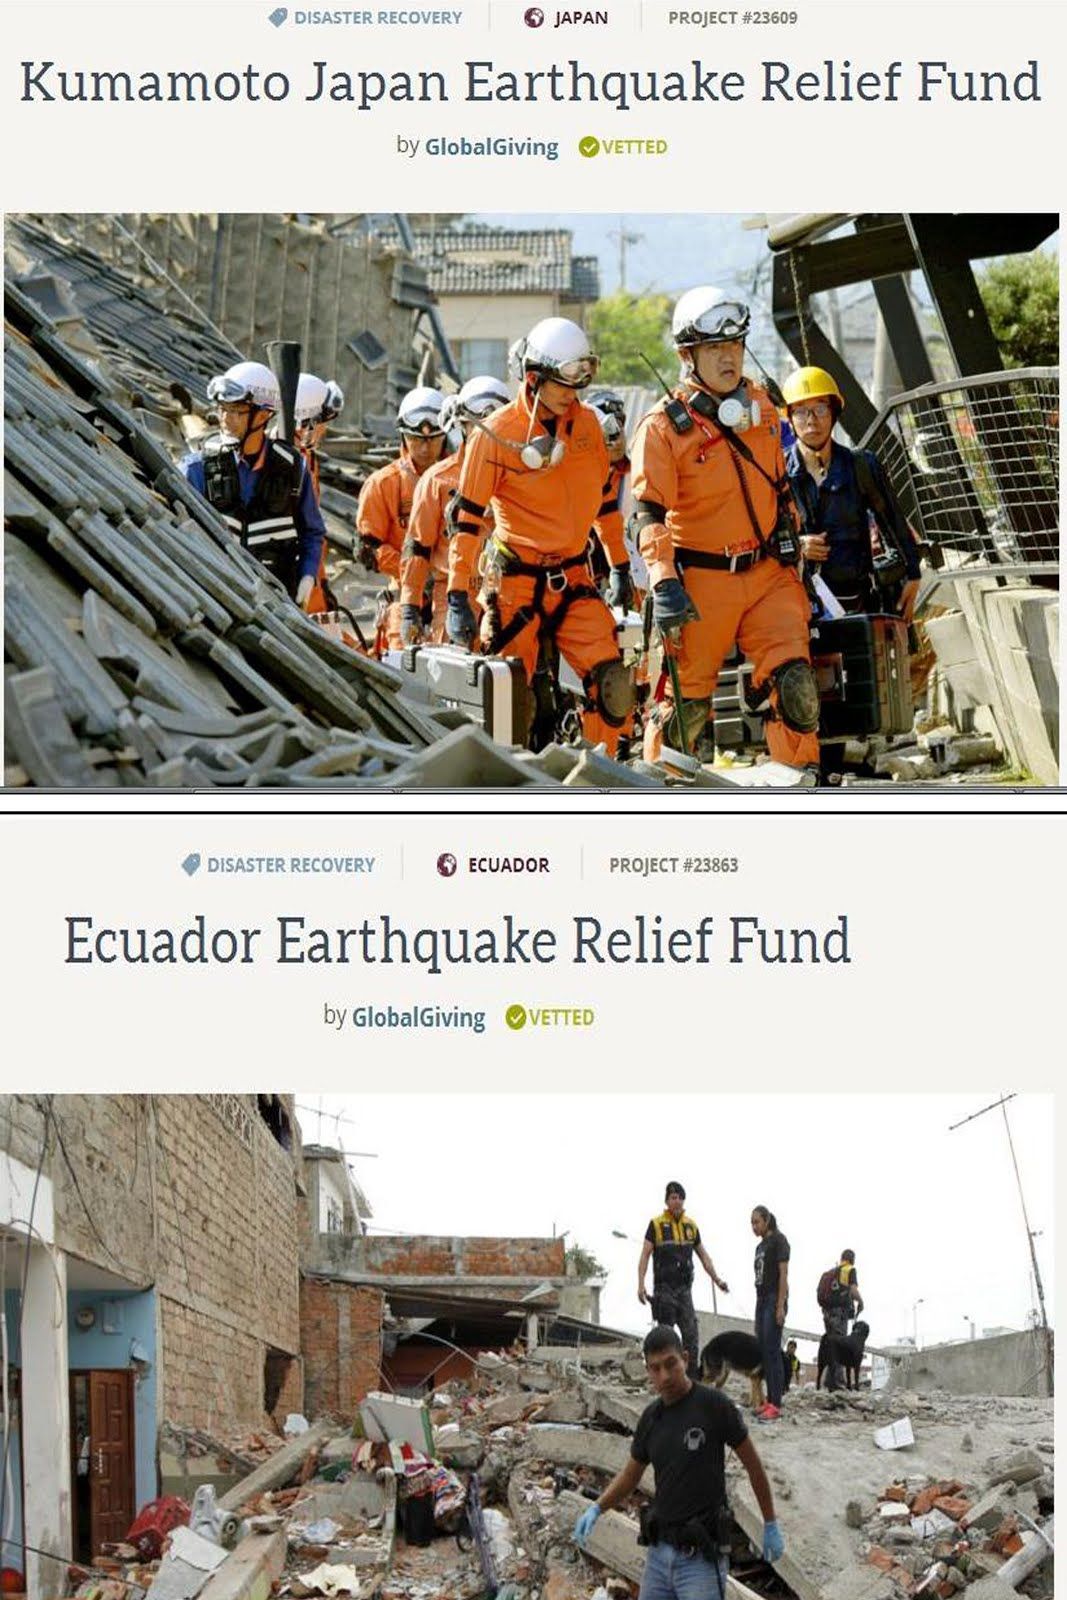 Fund Raise For Japan & Ecuador Earthquake